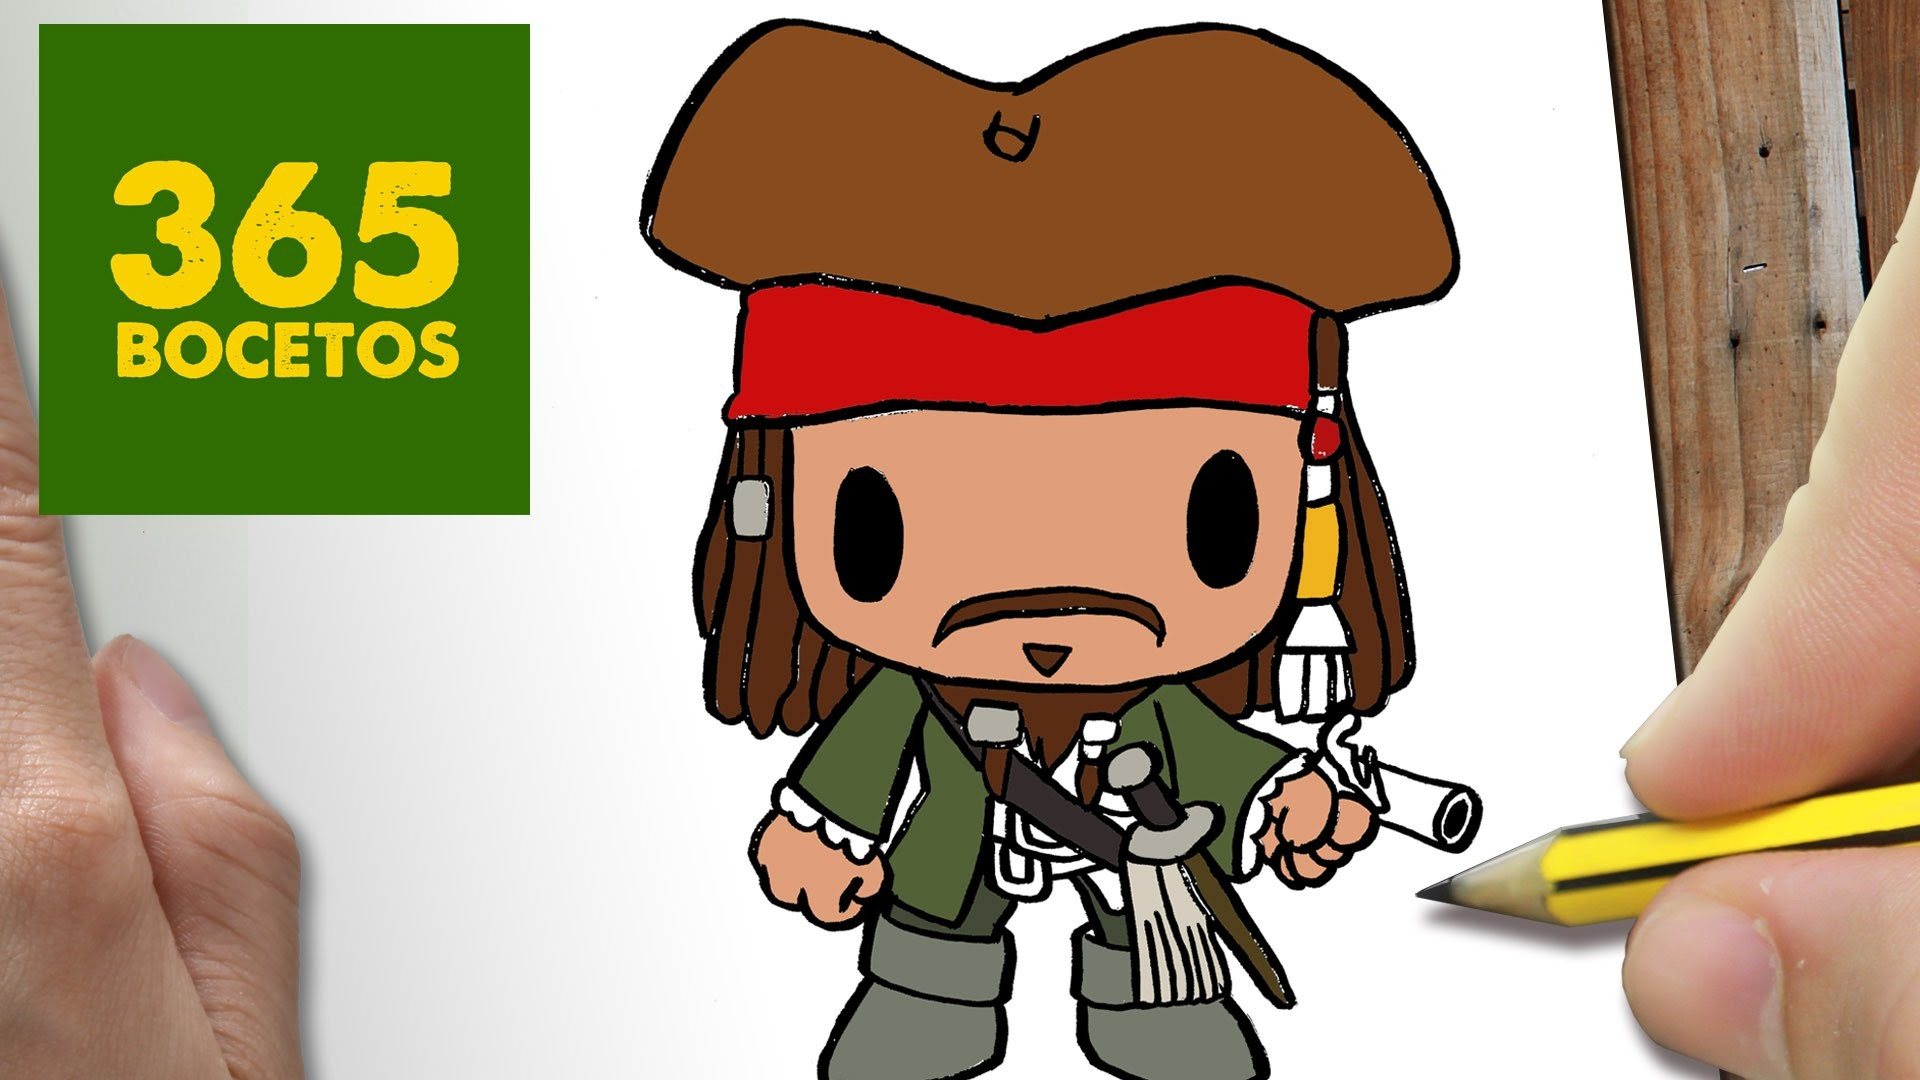 COMO DIBUJAR JACK SPARROW KAWAII PASO A PASO - Dibujos kawaii faciles - How to draw a JACK SPARROW